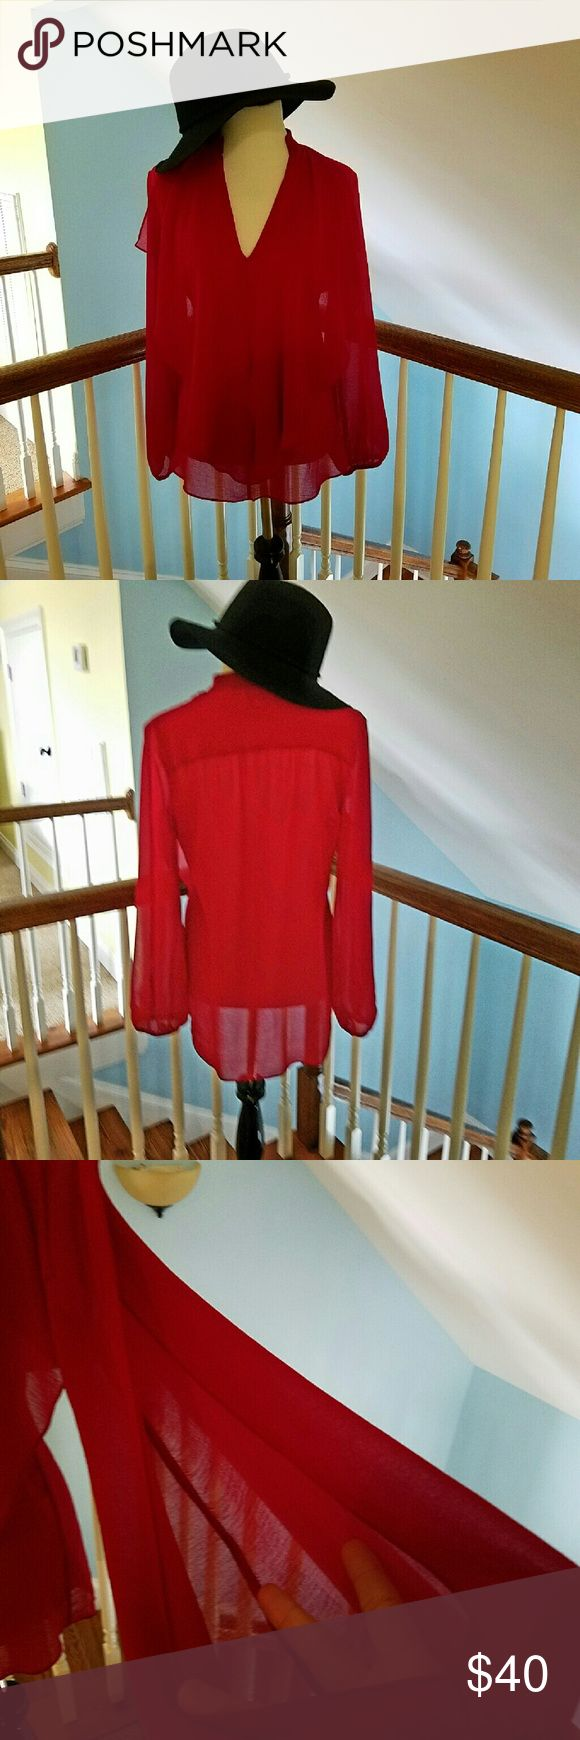 NWOT Red Atina Christina Top Brand new never worn.  Lost weight and now it's too big.  Check out the sleeves in pic three.   Wear a cami underneath.  100% Polyester Hand wash cold or dry clean 20% OFF BUNDLES OF TWO OR MORE Atina Christina  Tops